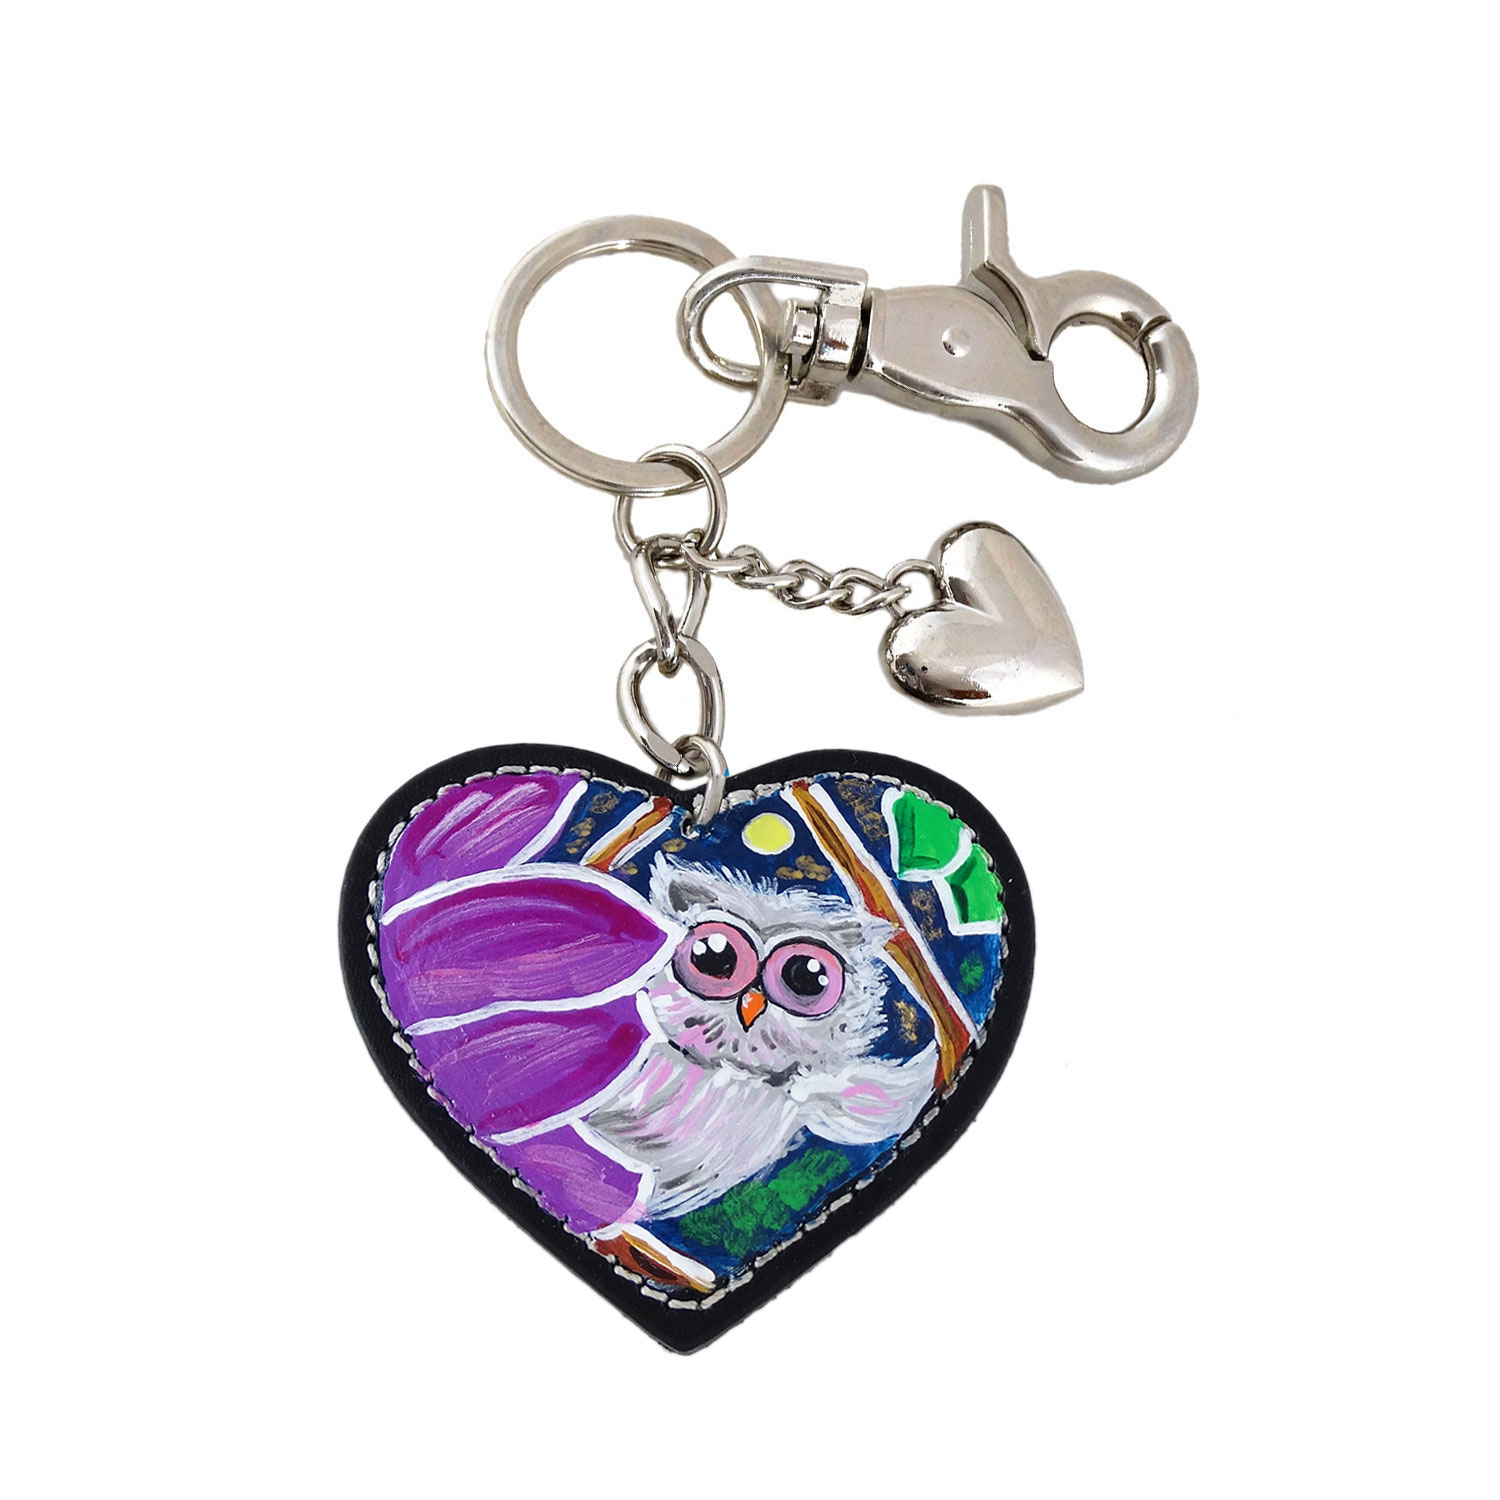 Hand painted keyring - The owl and the moon